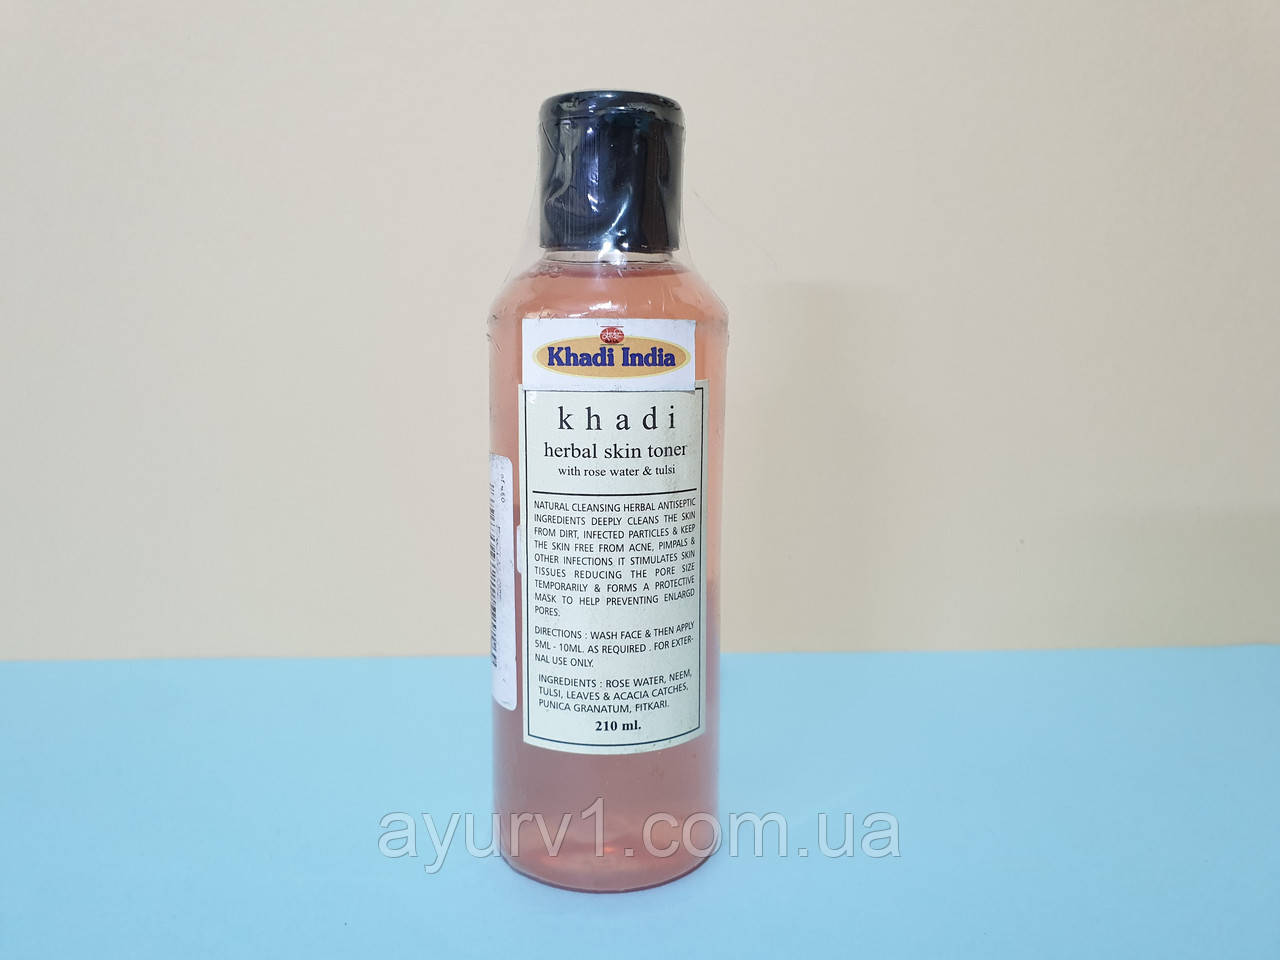 Тоник Розовая вода & тулси / Khadi herbal skin toner with rose water & tulsi / 210 ml